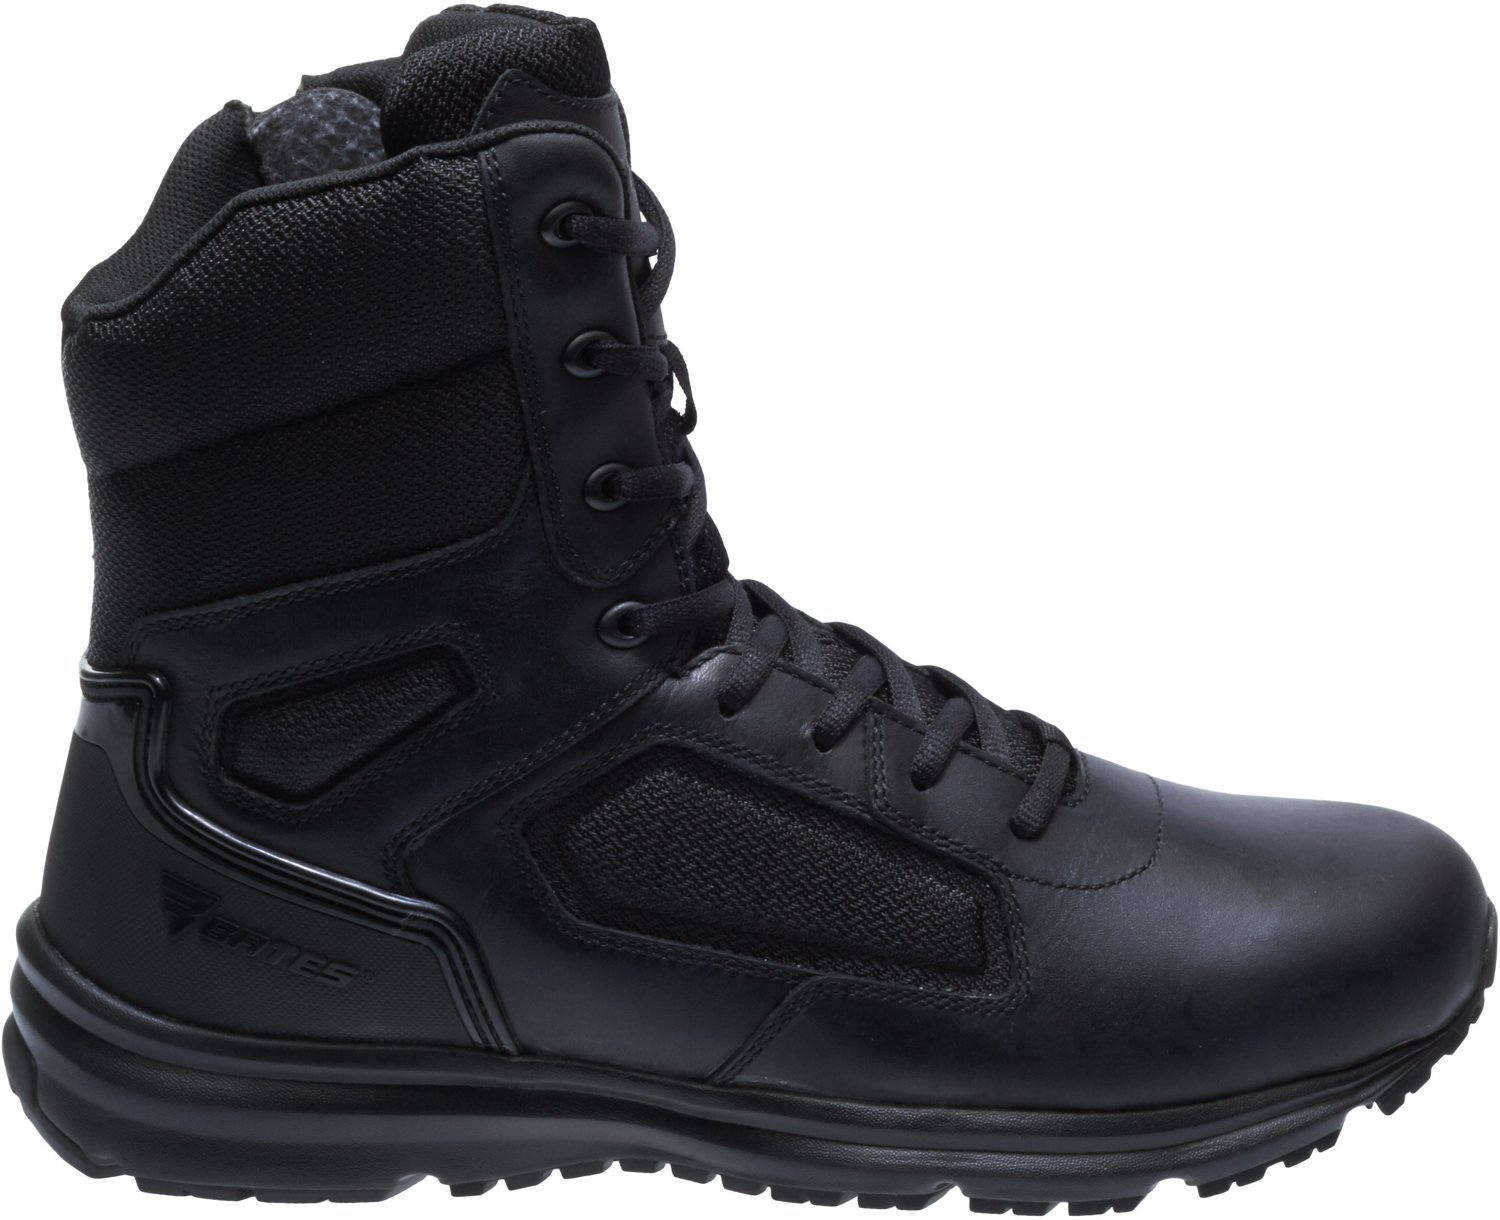 87de4a0b2902 Display product reviews for Bates Men s Raide Hot Weather Side Zip Service  Boots